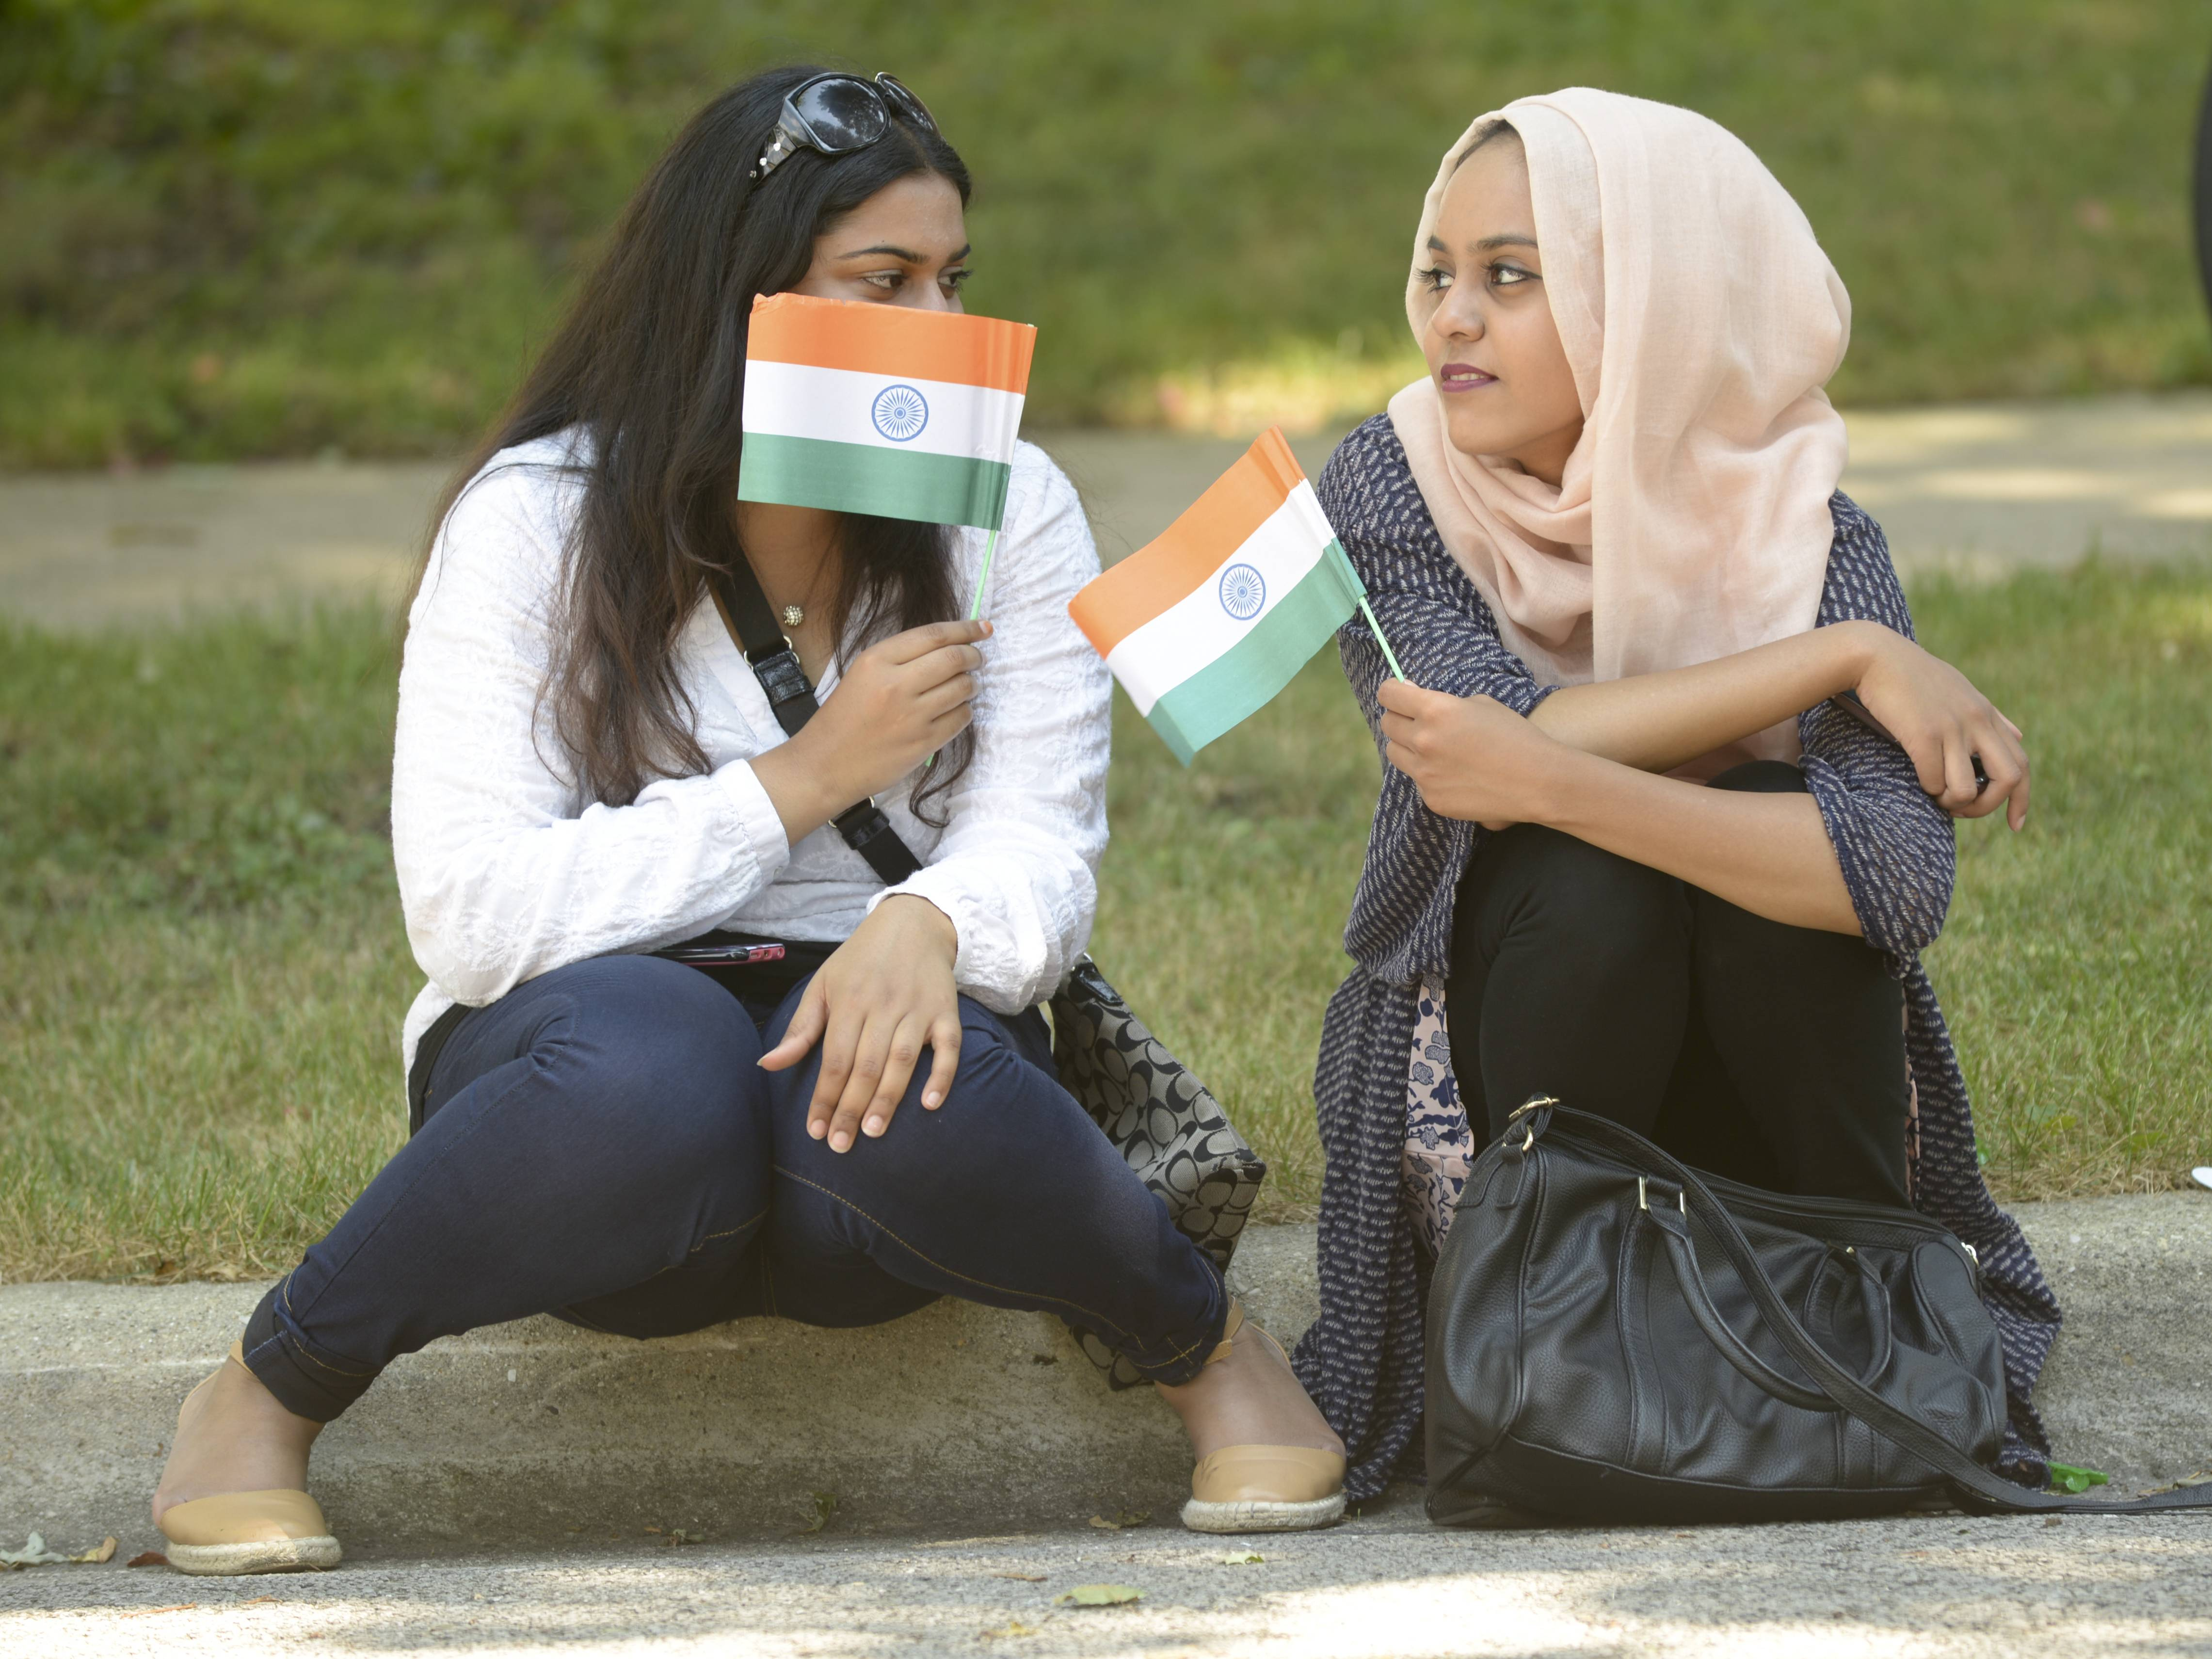 Anum Razak of Streamwood and Shajwa Hussain of Naperville watch the Naperville Indian Community Outreach's first India Day Parade on Sunday. The event, and a ceremony that followed, celebrated India's 69th year of independence.